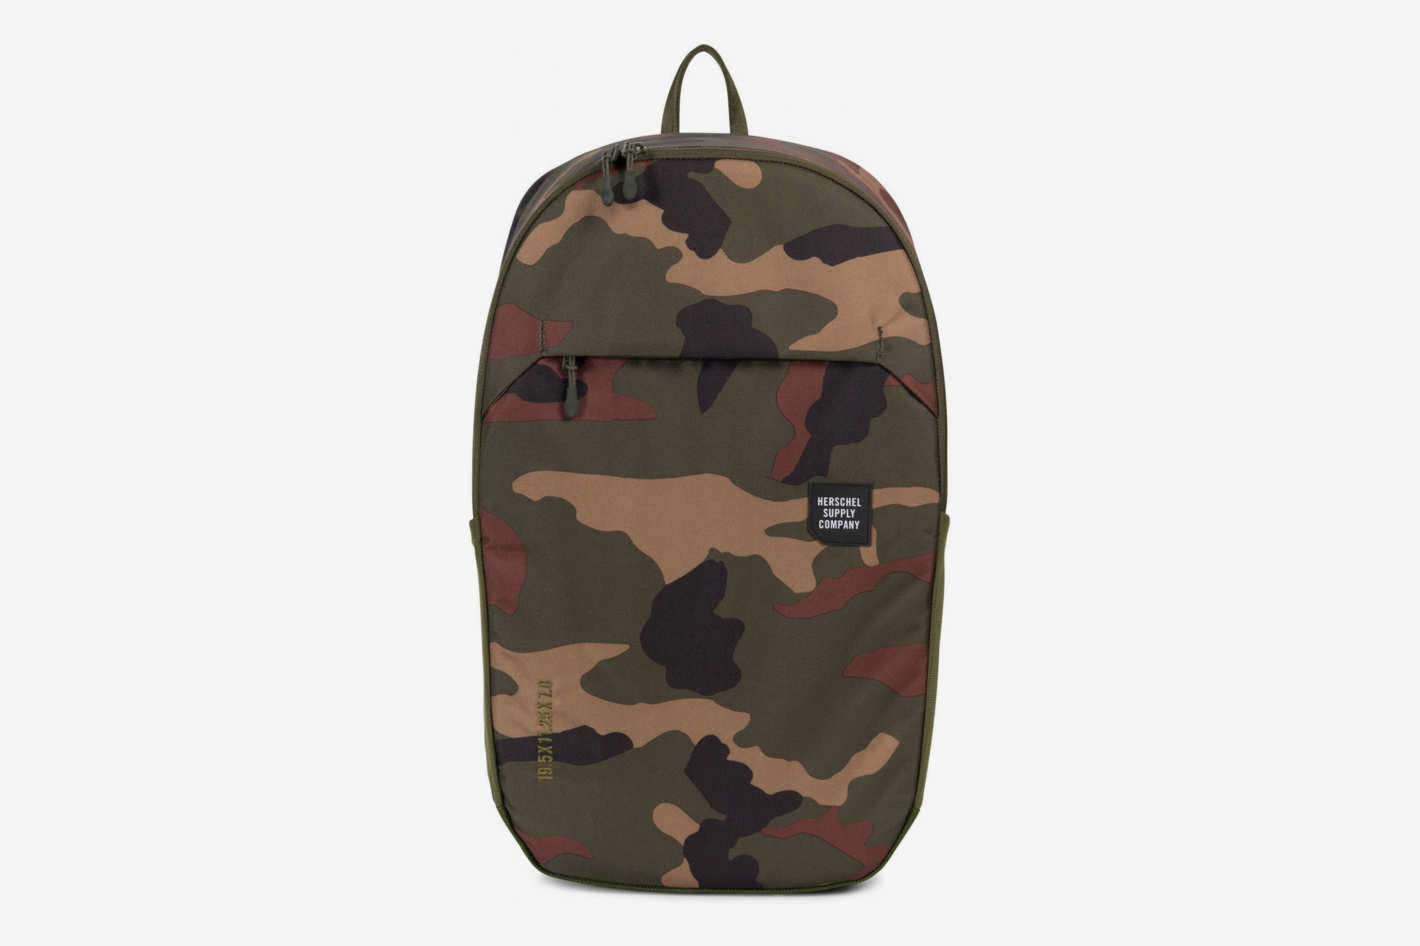 Herschel Backpack Sale at Nordstrom 2018 a25b87f8ed0a4